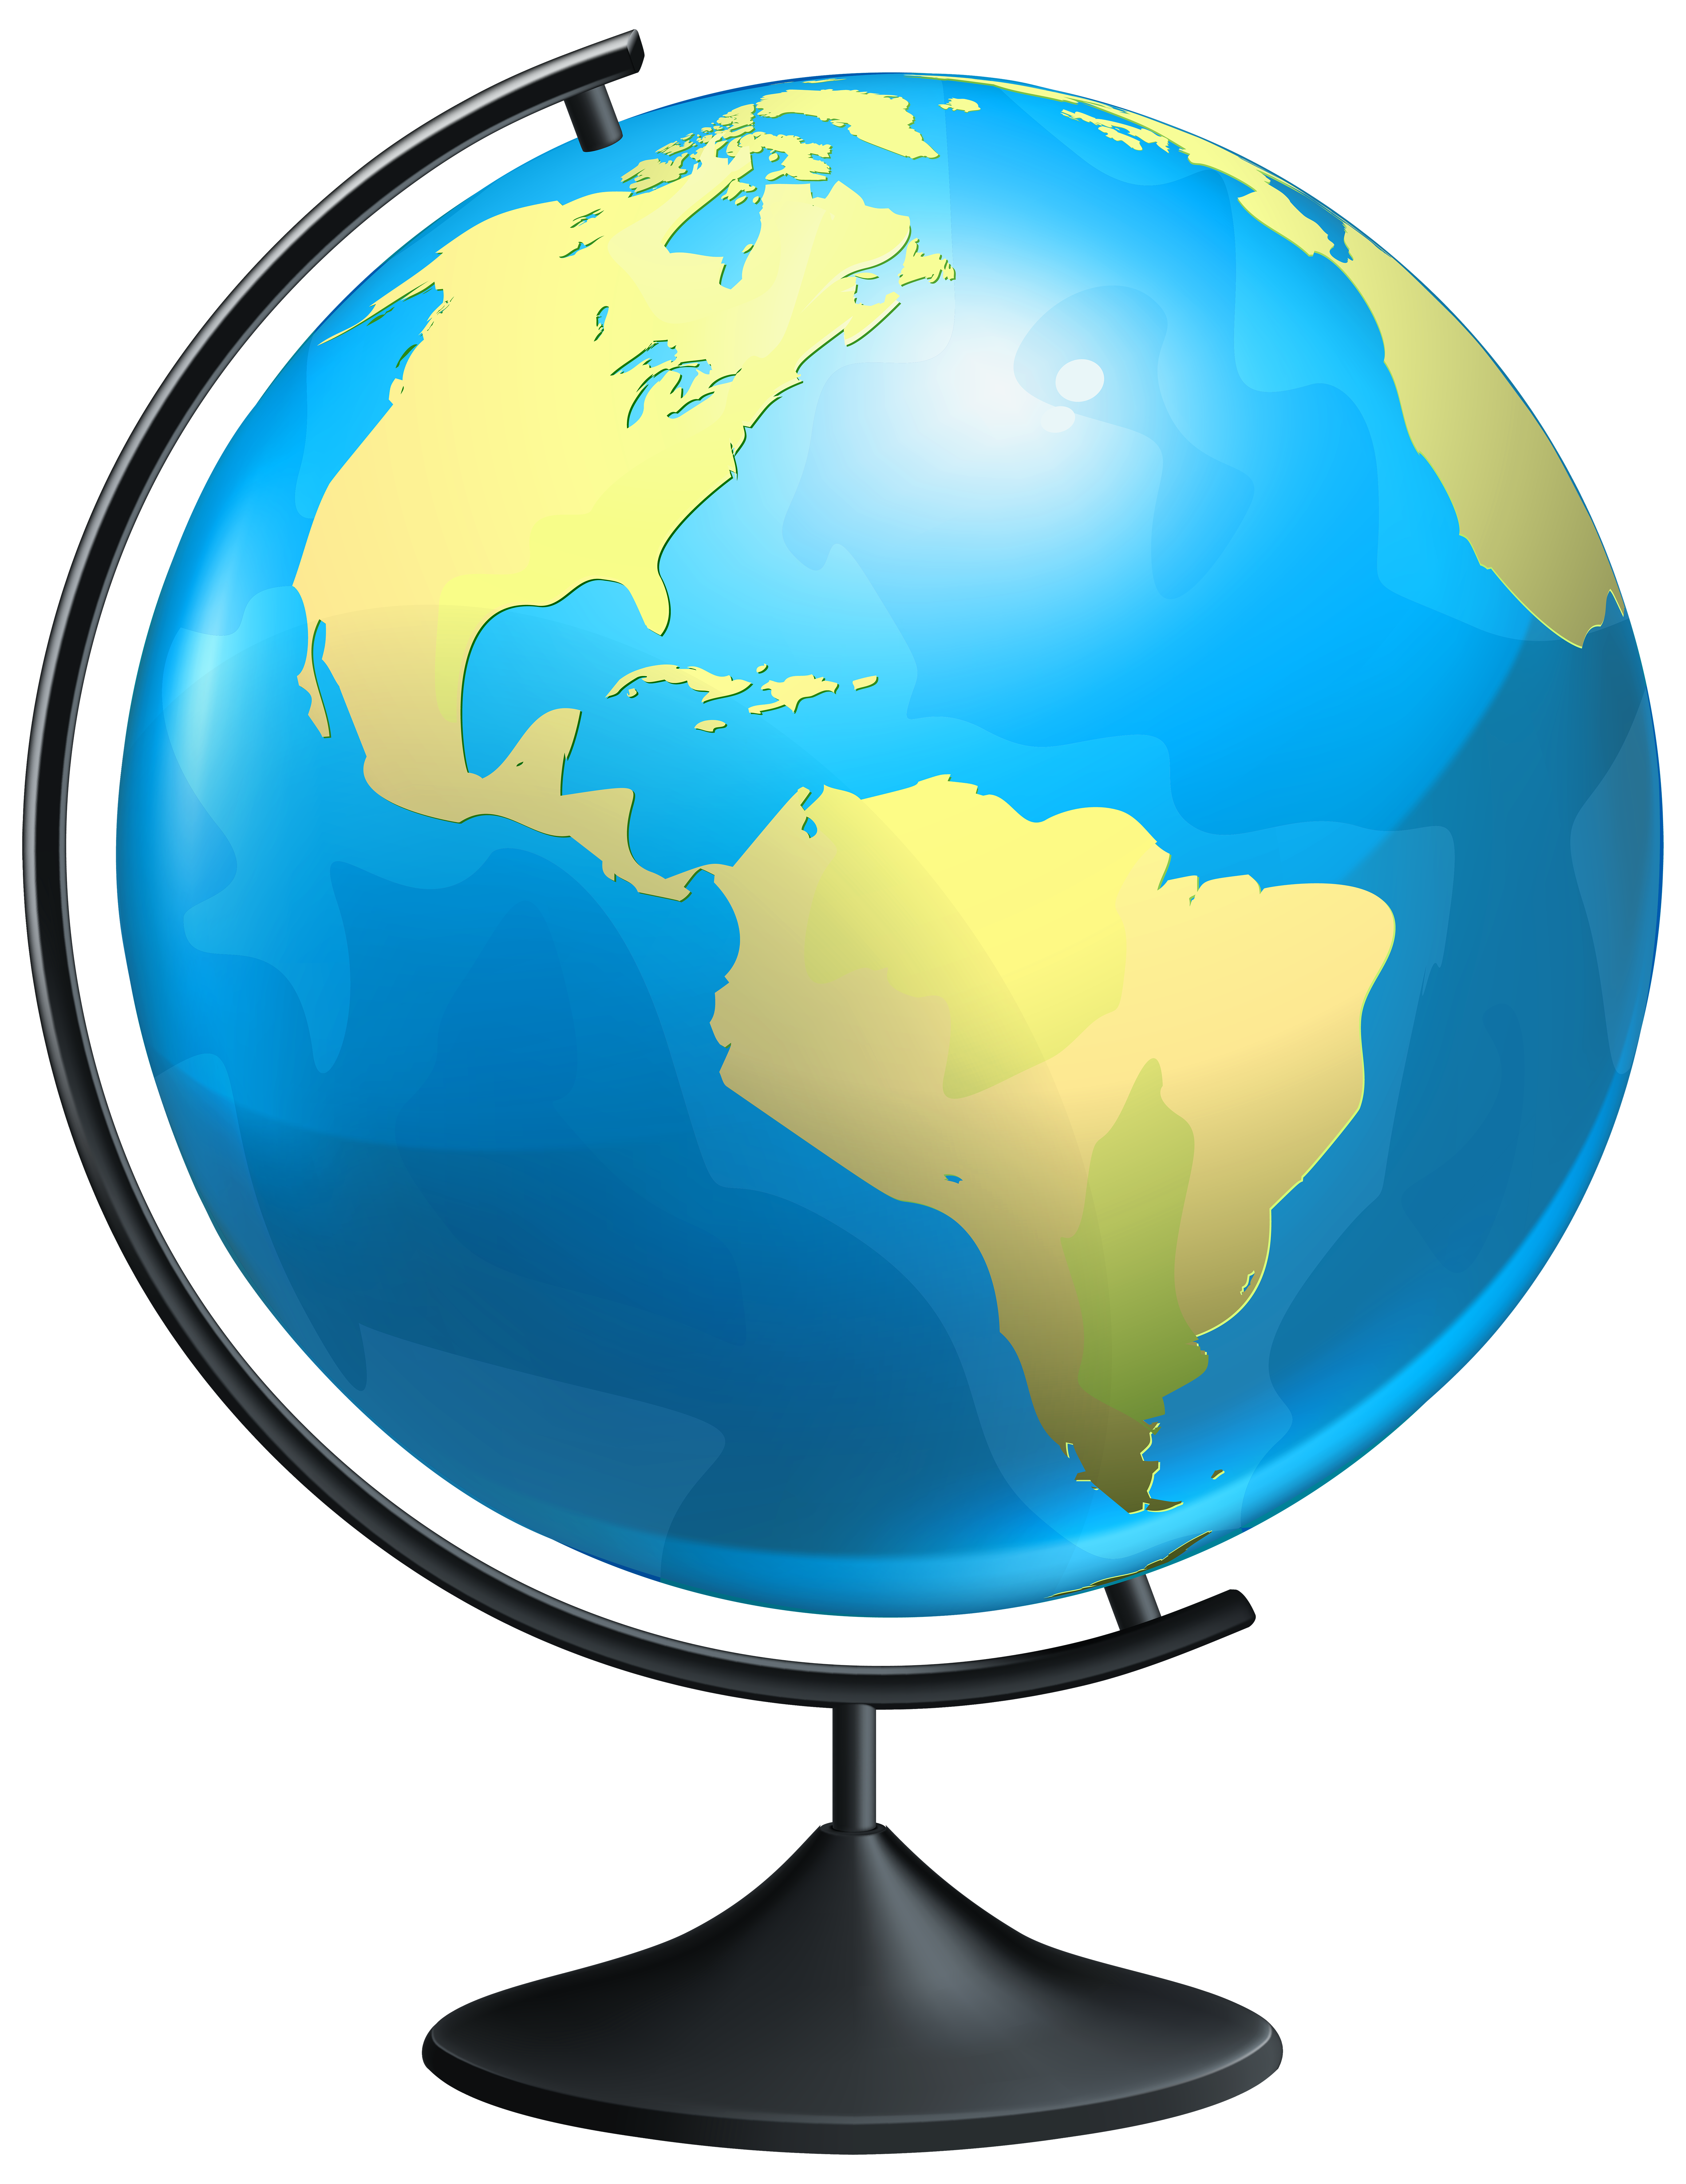 Geography clipart globe Transparent Art View Globe size